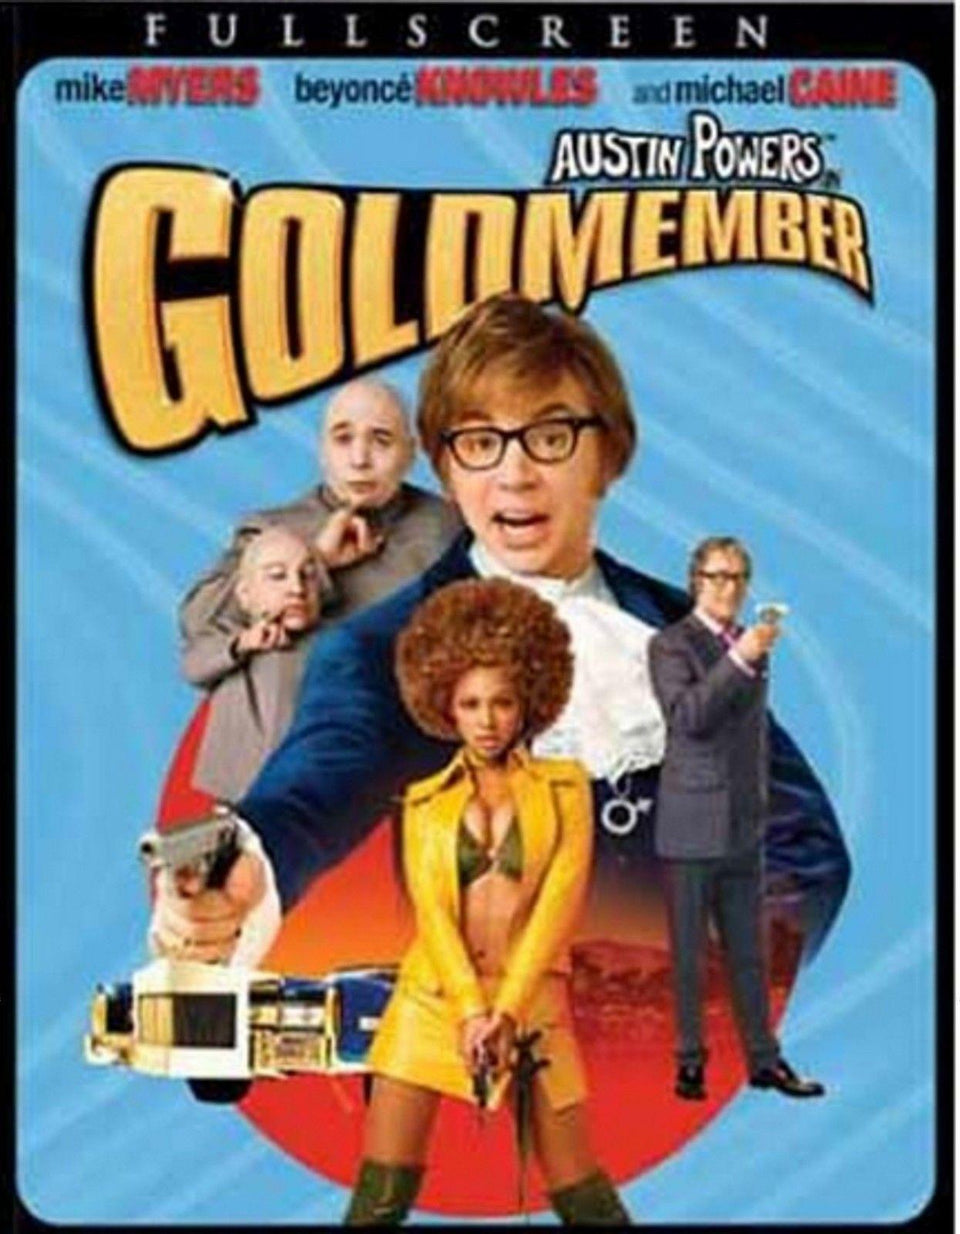 Austin Powers in Goldmember Fullscreen infinifilm DVD *Very Good*